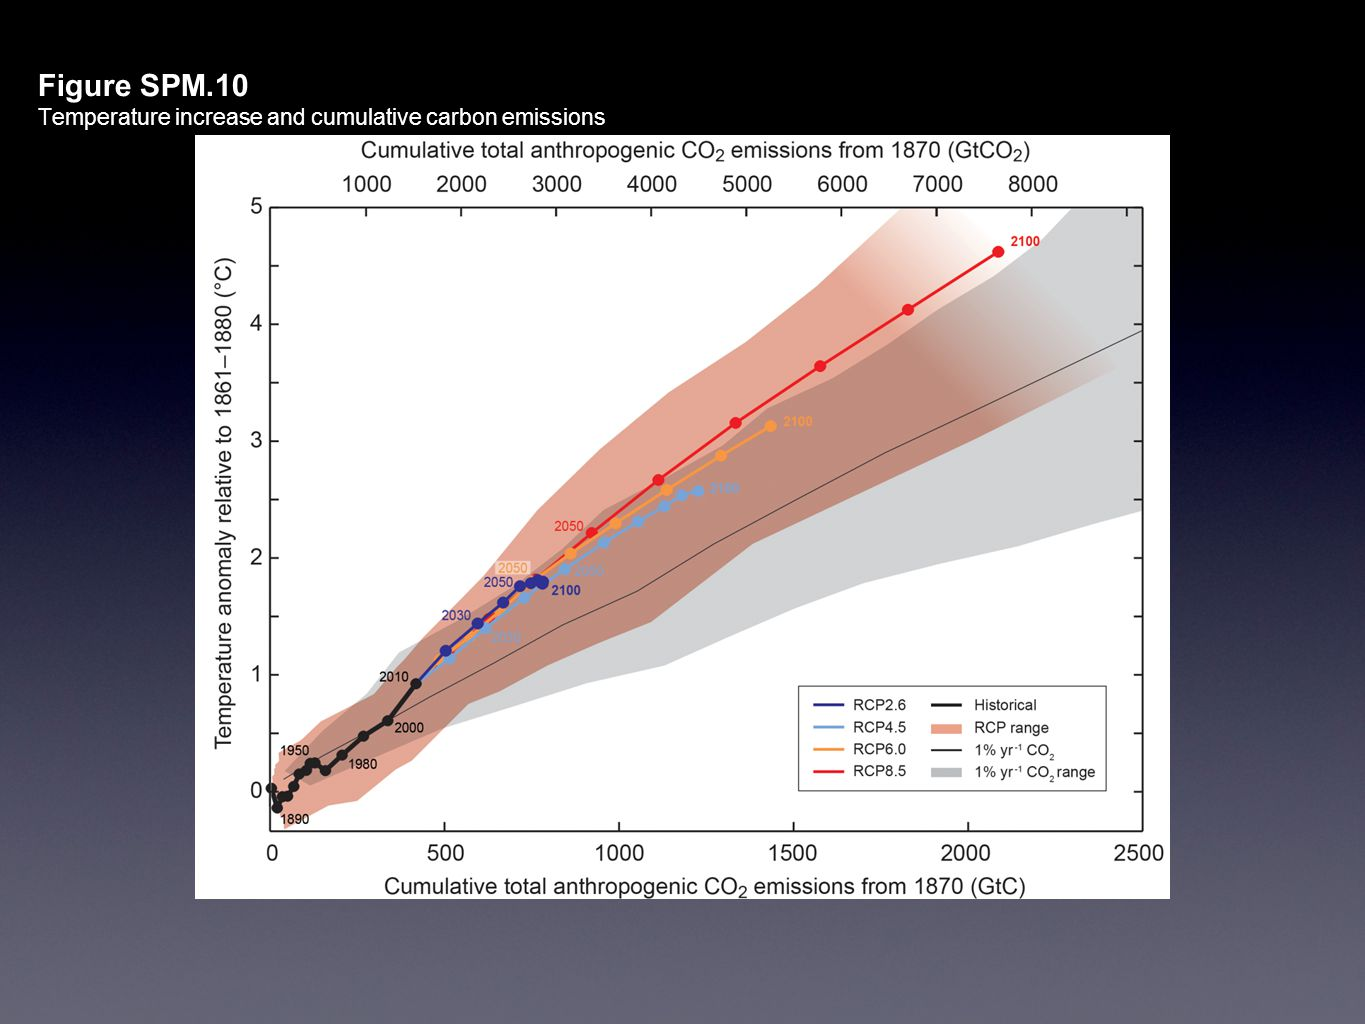 Figure SPM.10 Temperature increase and cumulative carbon emissions All Figures © IPCC 2013